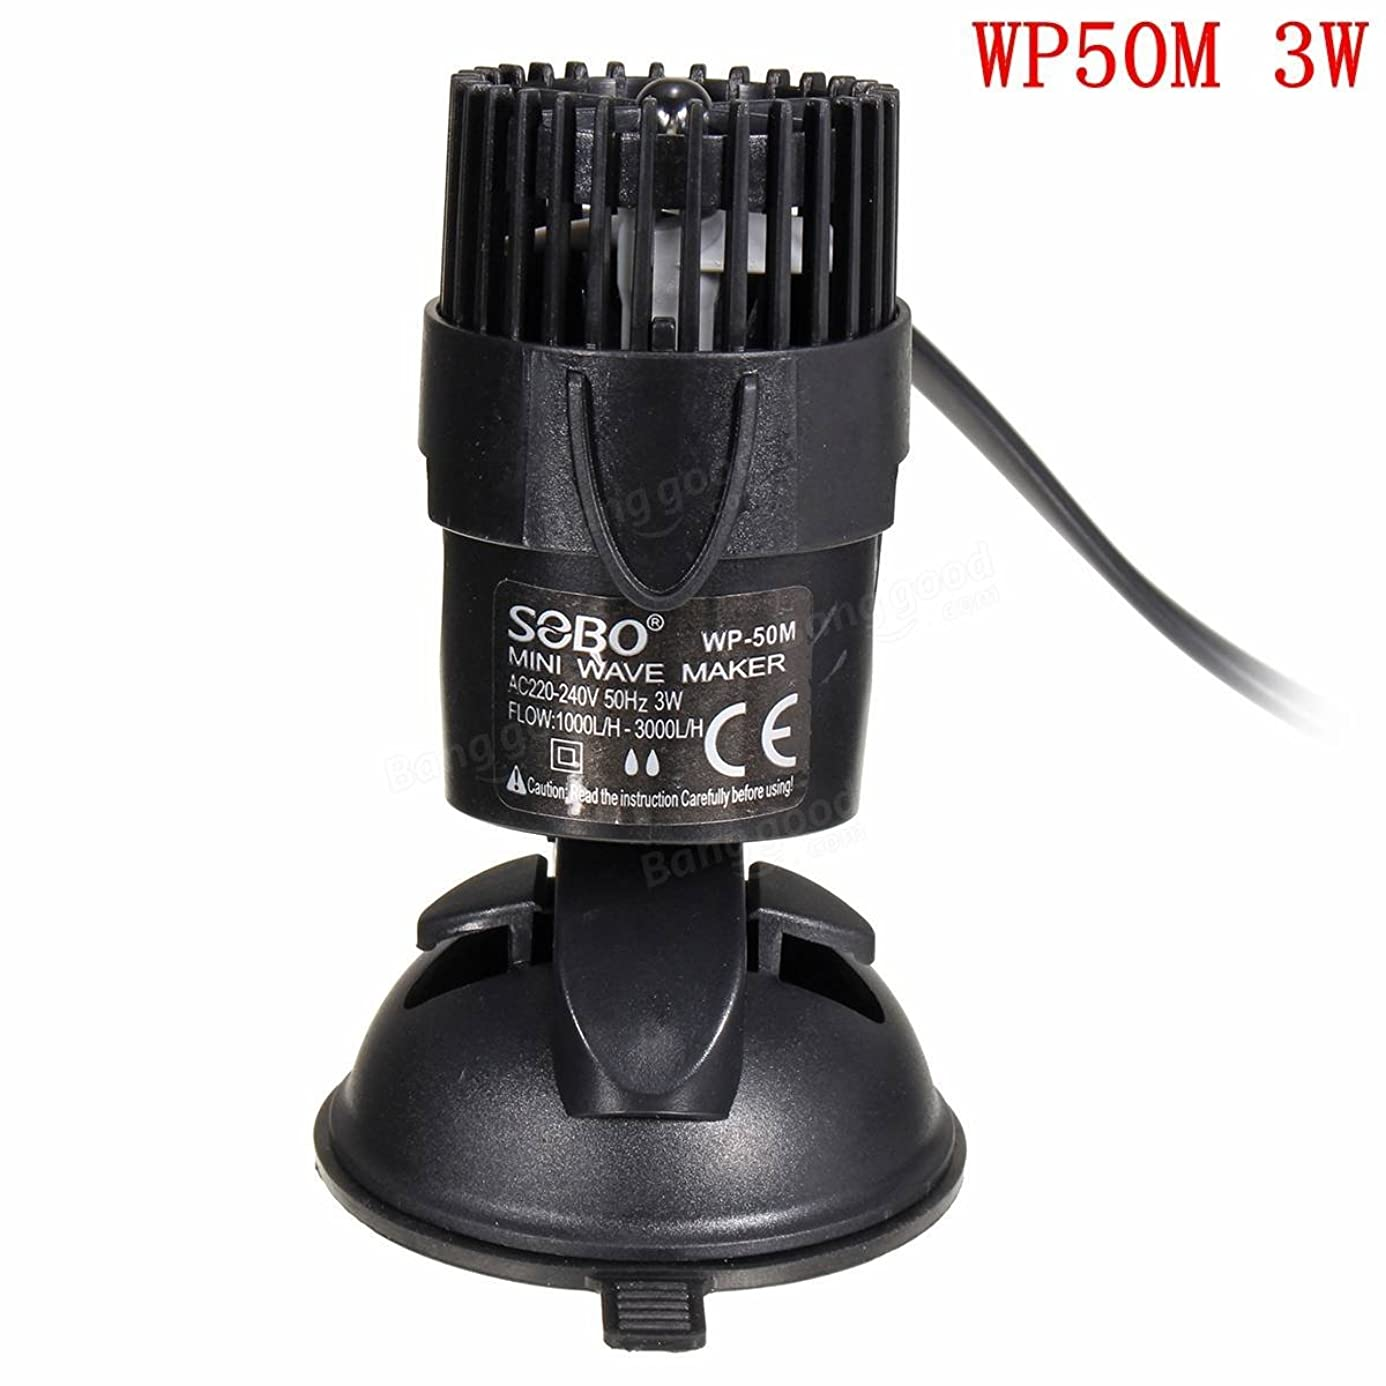 220V 3W-25W Submersible Wave Water Pump Powerhead Pump Reef Coral Filter - Power Tools Other Power Tools - (3W) - 1 Pcs Aquarium Wave Maker